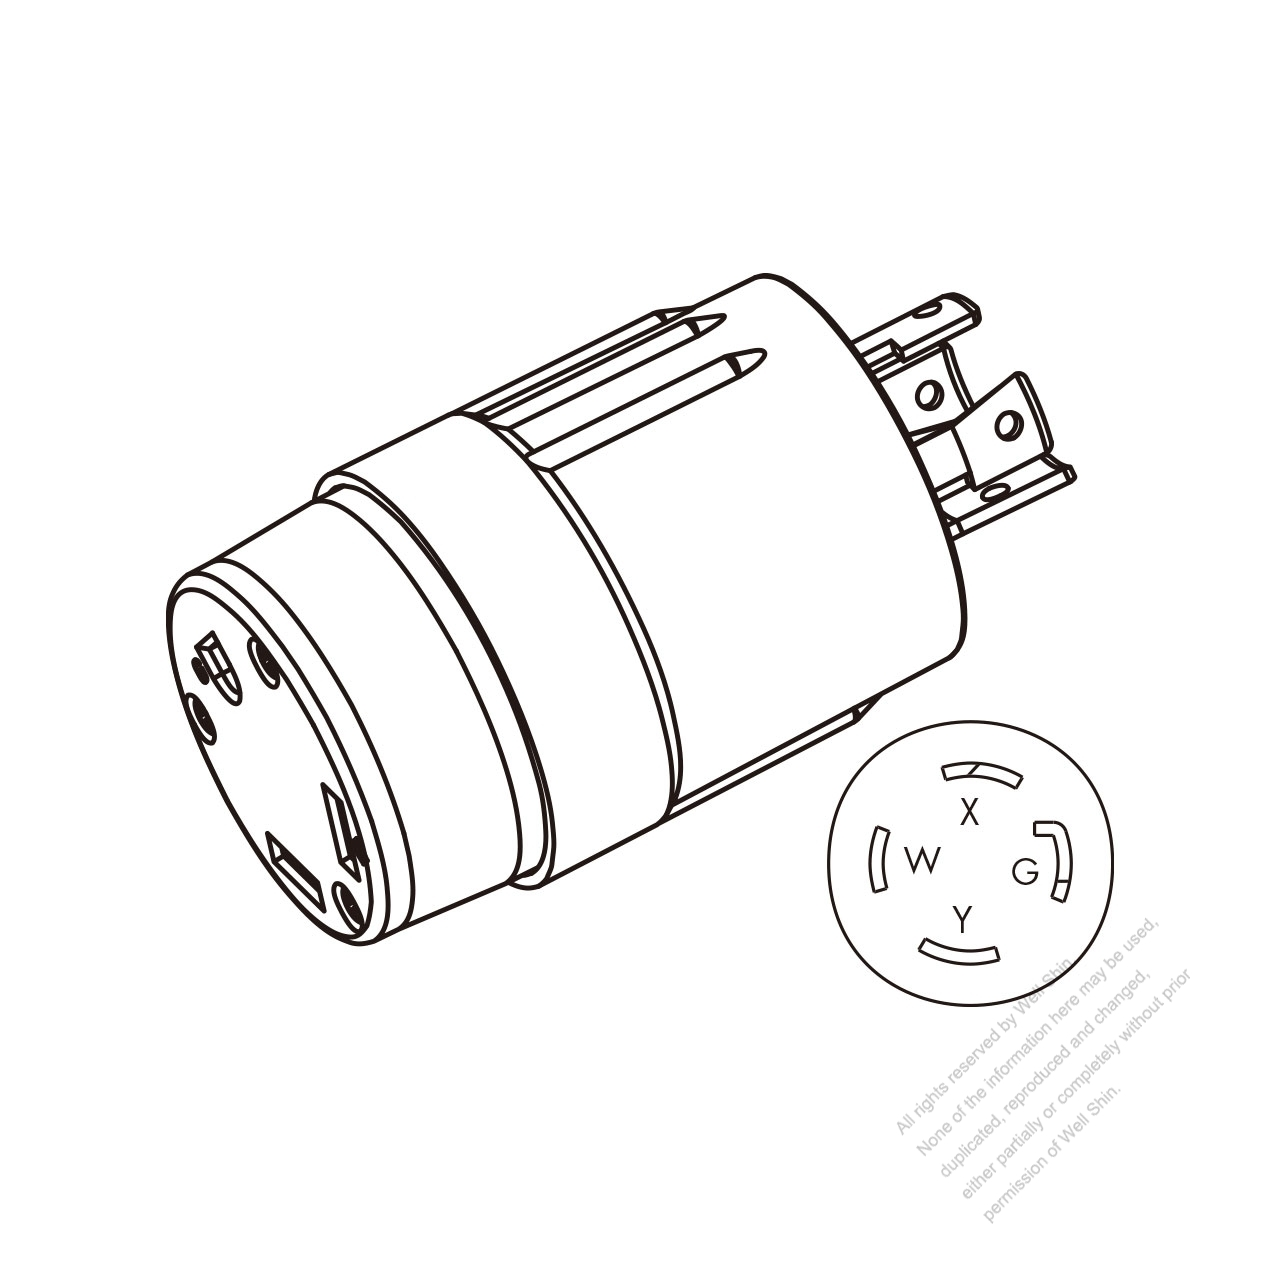 Pin Nema Plug Diagram